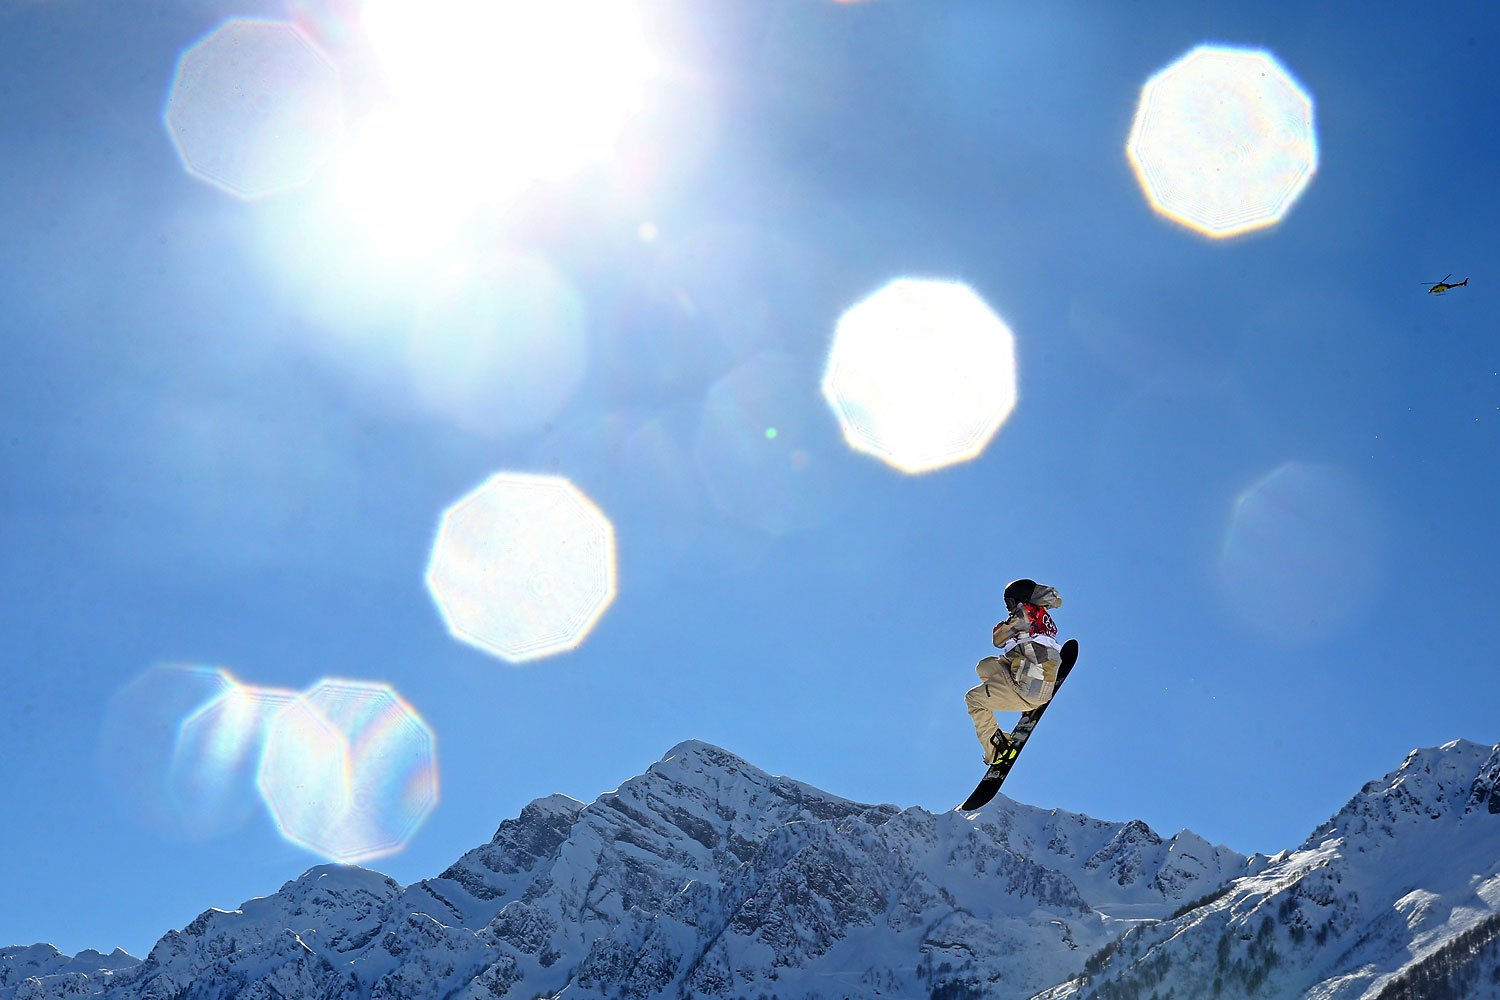 Sage Kotsenburg of the United States competes in the Snowboard Men's Slopestyle Final during day 1 of the Sochi 2014 Winter Olympics Feb. 8, 2014.